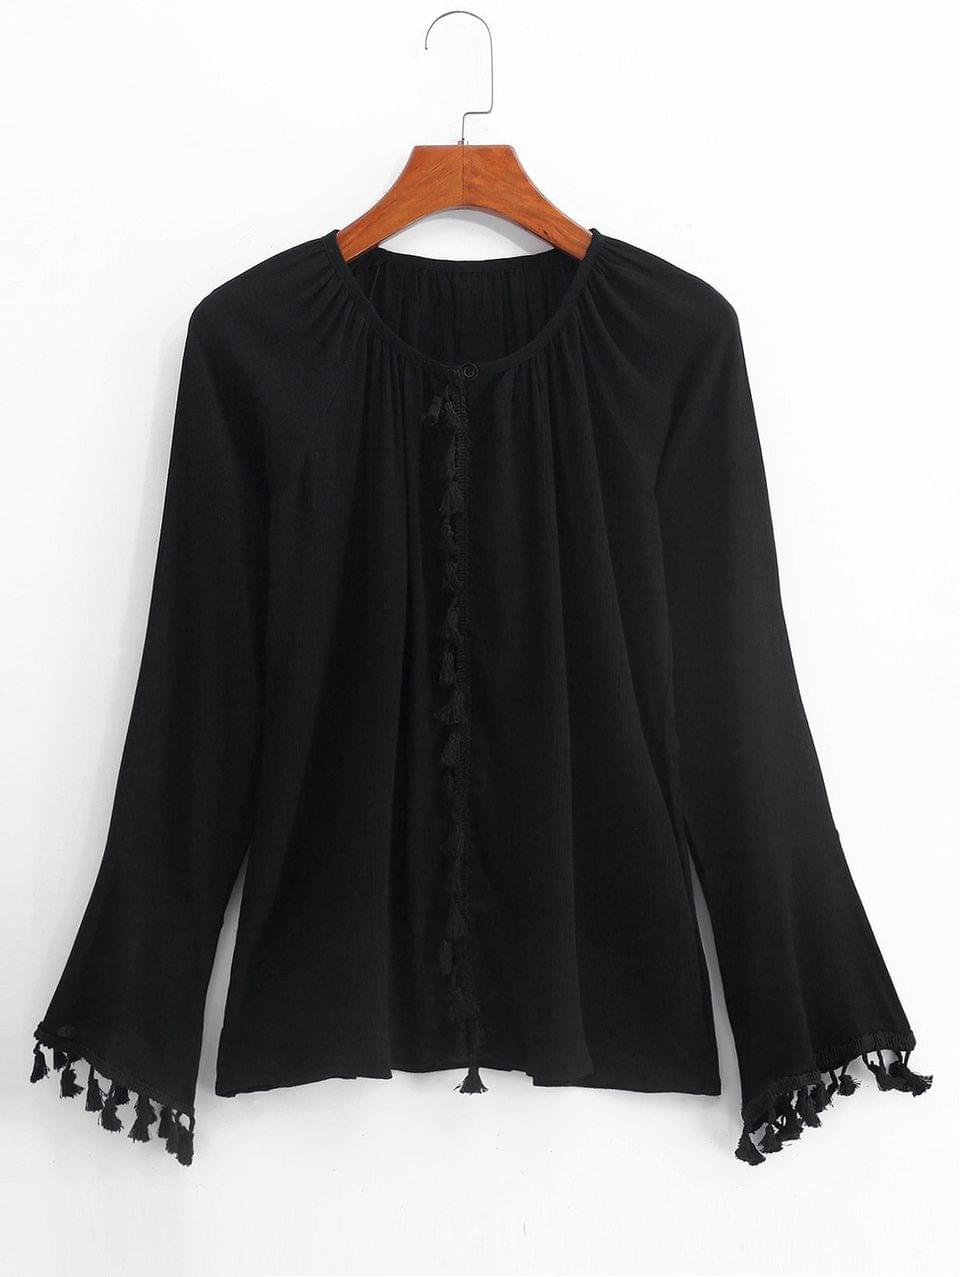 Women's Raglan Sleeve Tassels Blouse - Black Xl